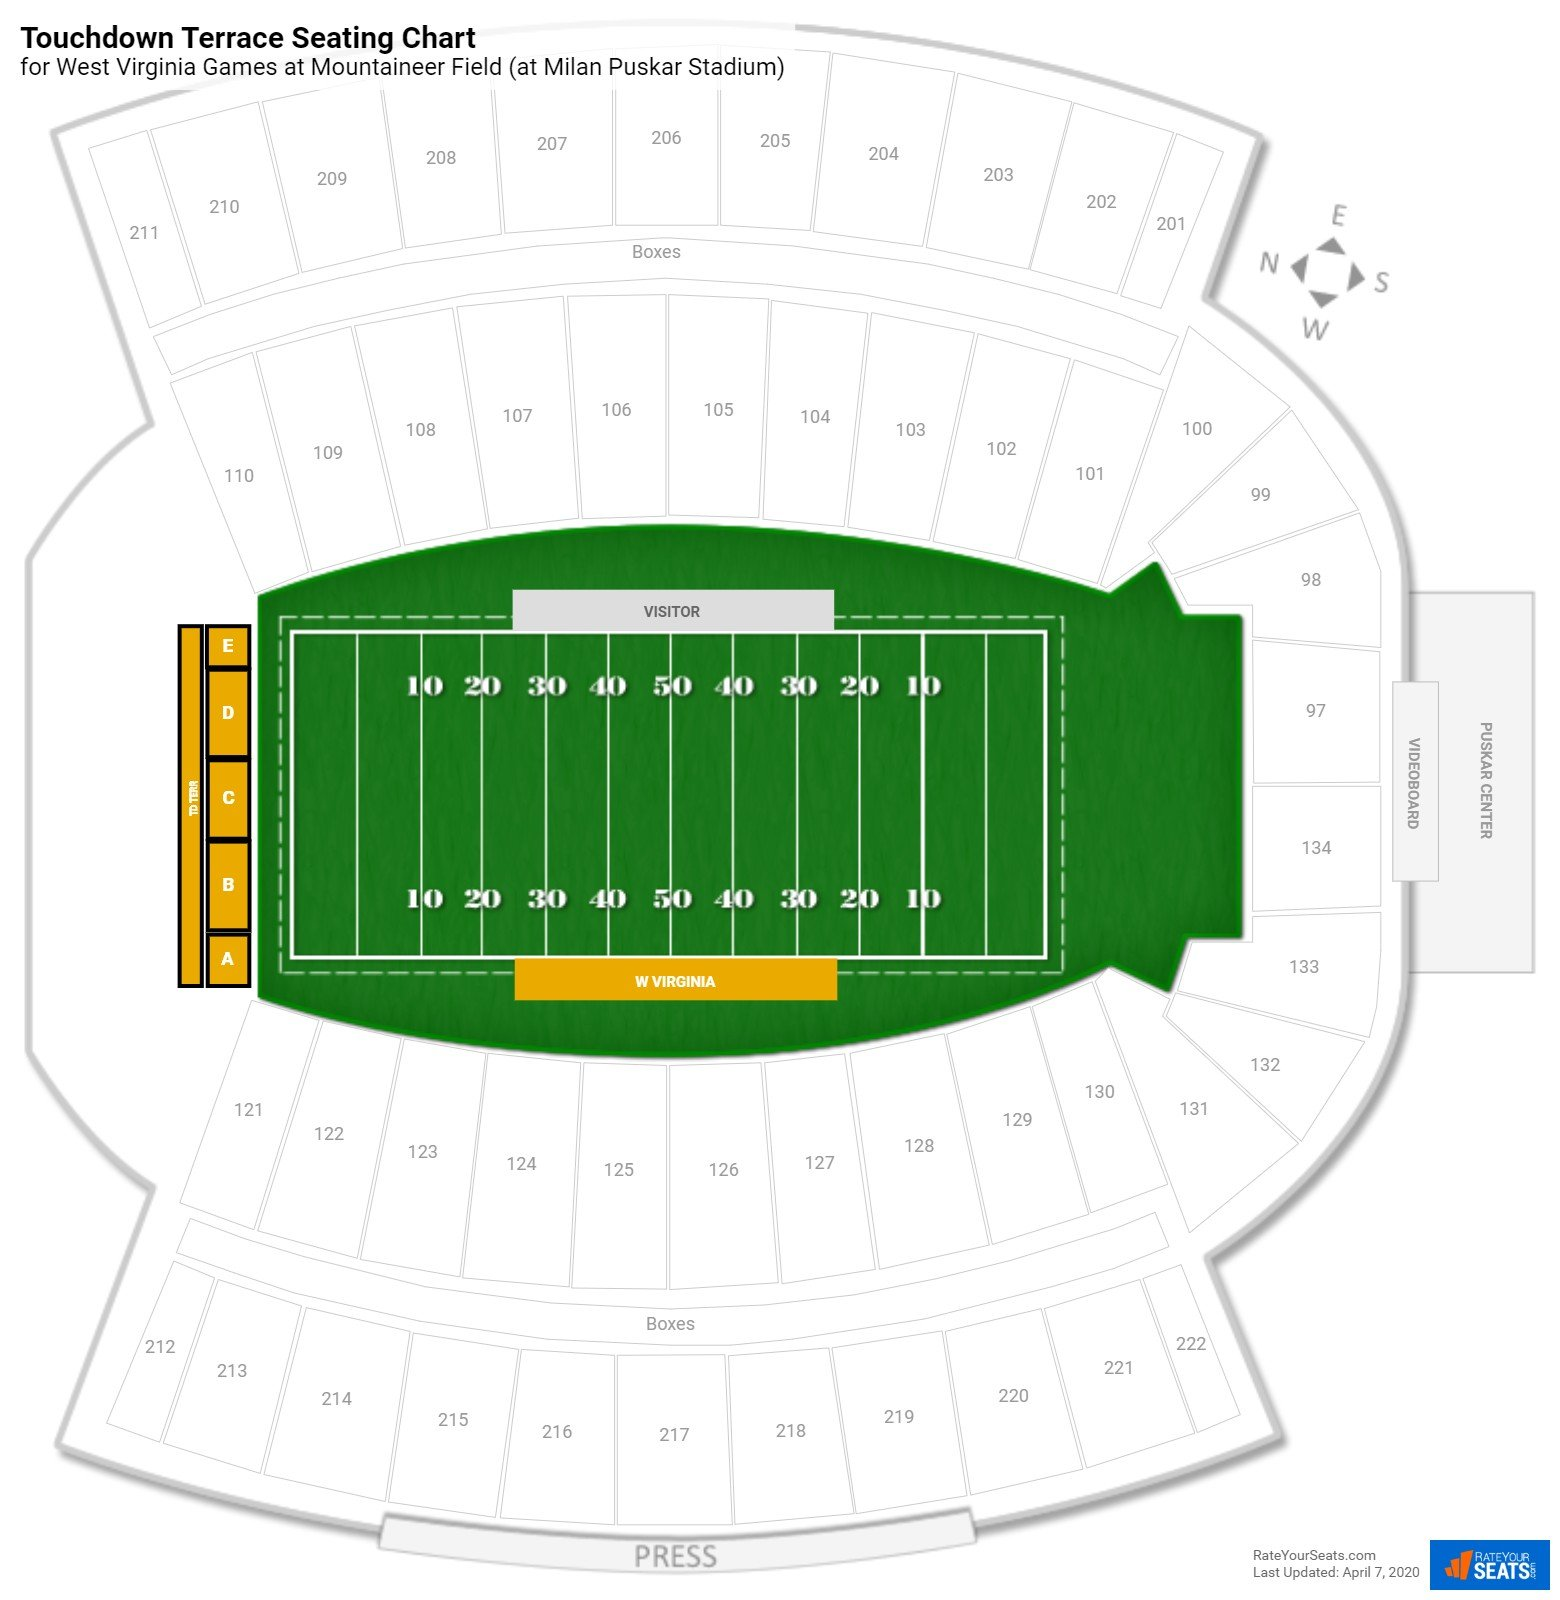 Mountaineer Field Touchdown Terrace seating chart